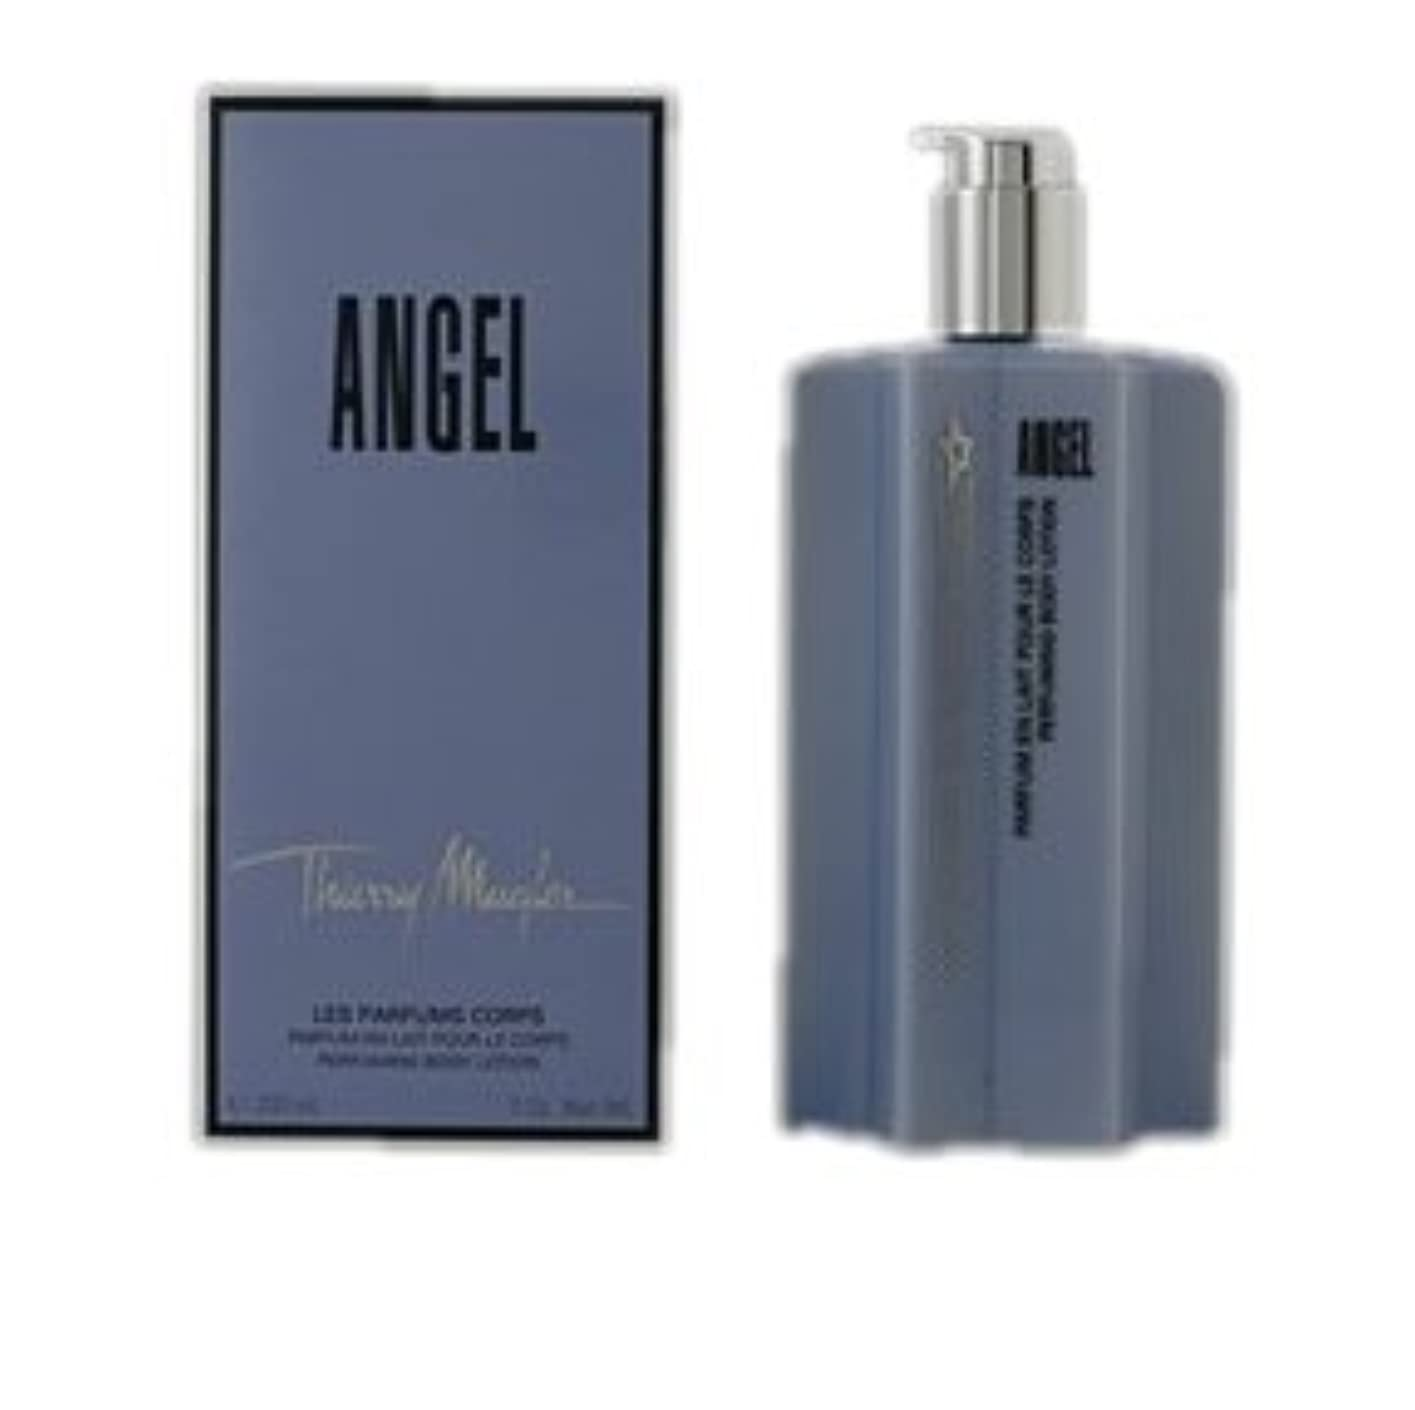 強盗ミスペンド波紋Thierry Mugler Angel Perfuming Body Lotion 200ml [並行輸入品]